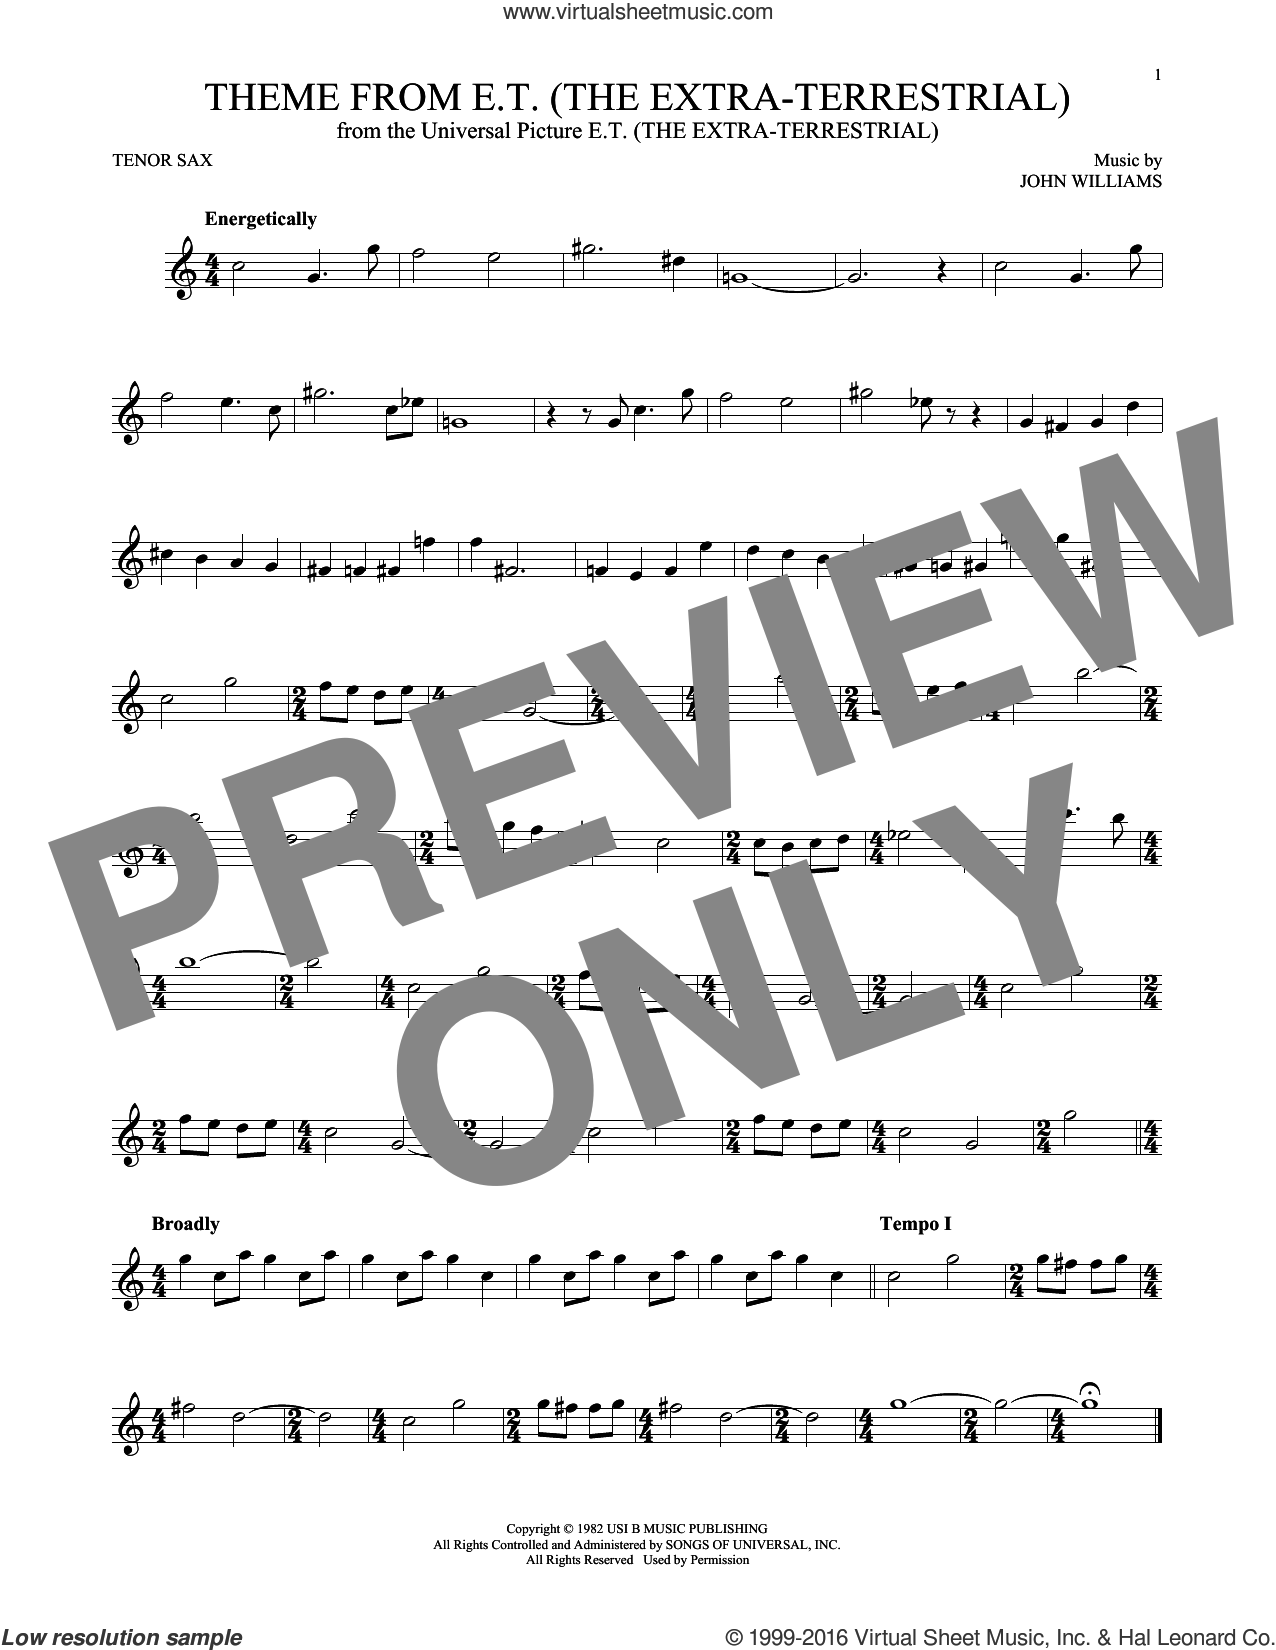 Theme From E.T. (The Extra-Terrestrial) sheet music for tenor saxophone solo by John Williams, intermediate skill level